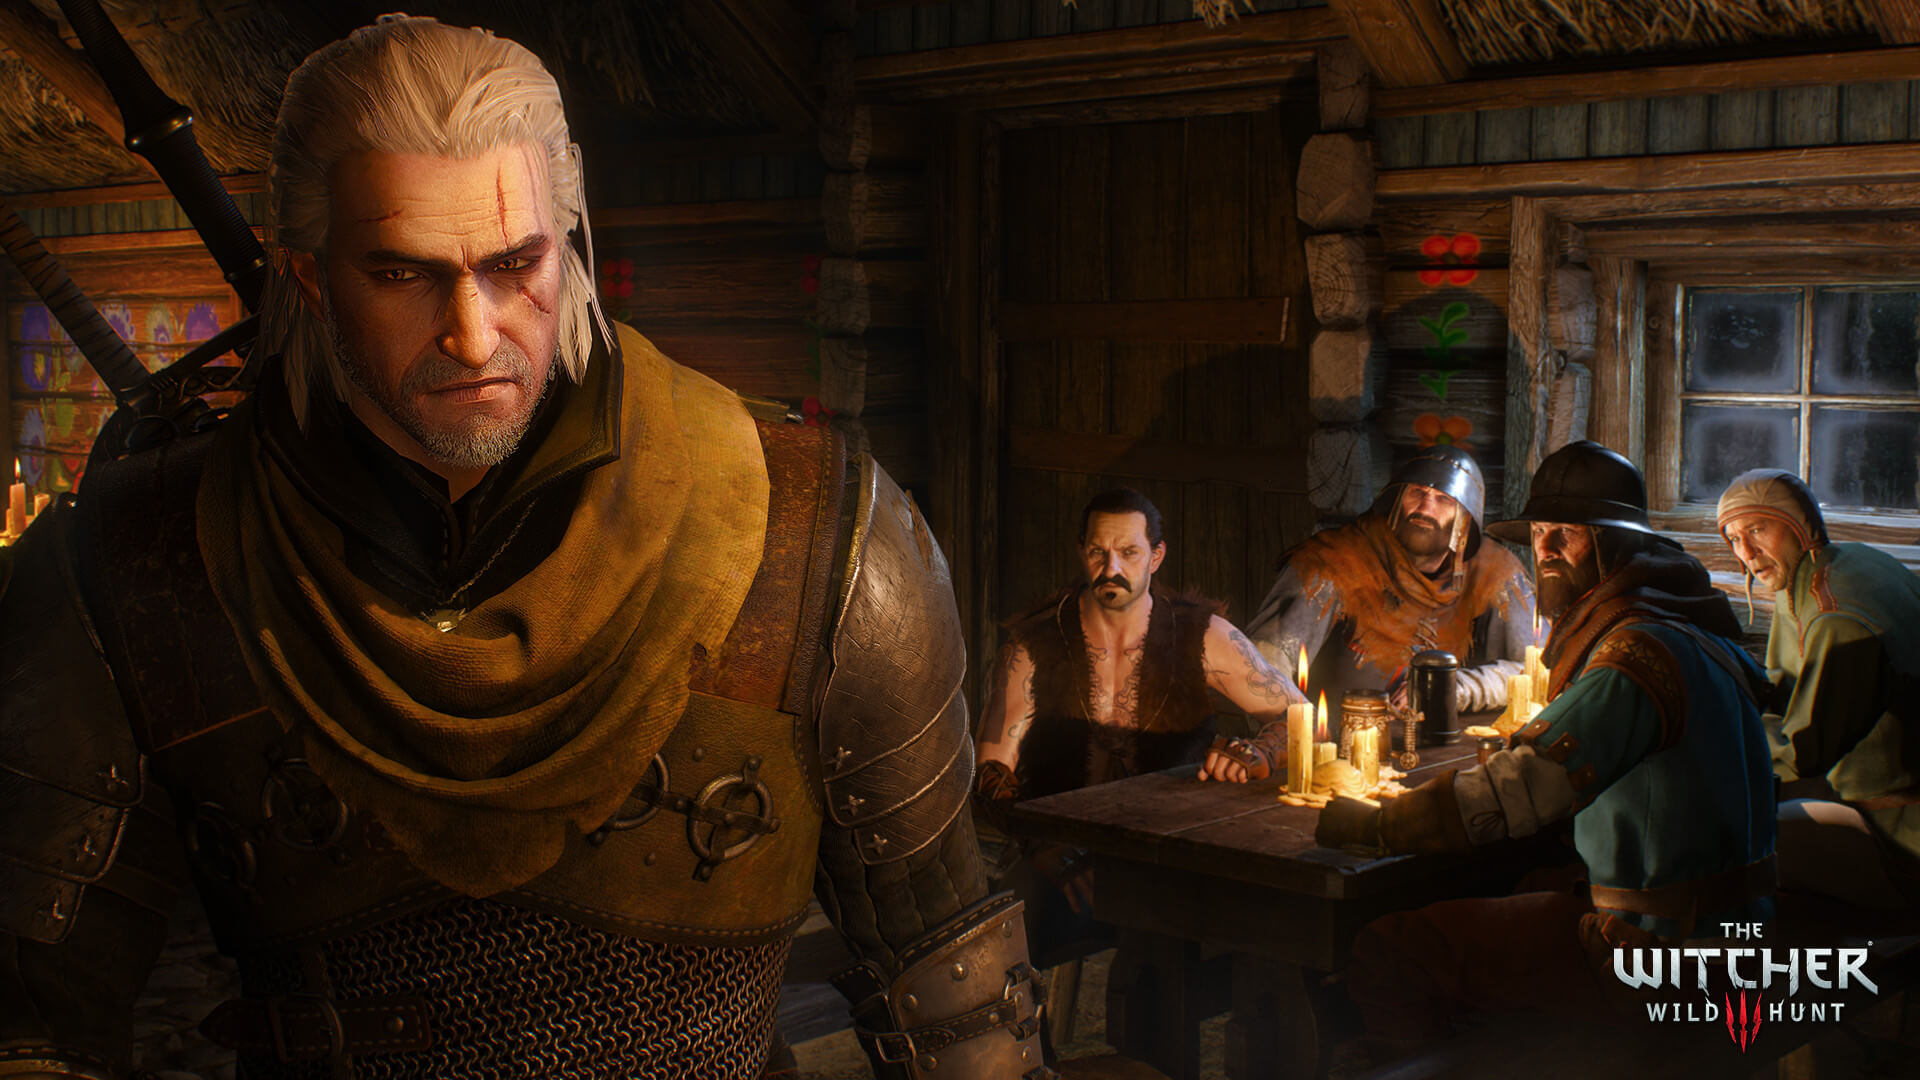 New Details Revealed for Netflix's Witcher Series